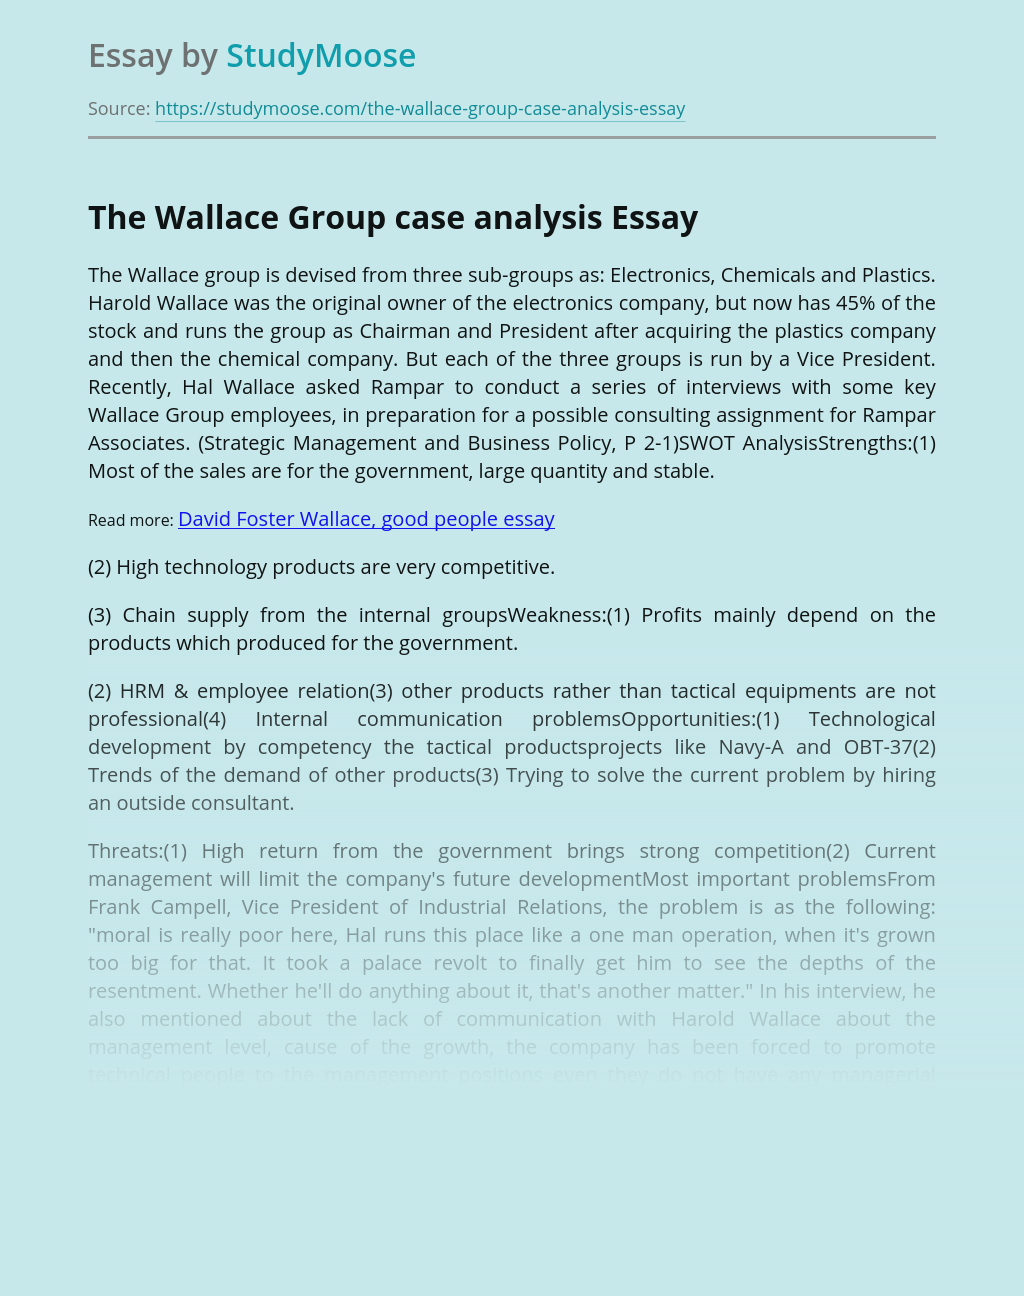 The Wallace Group case analysis